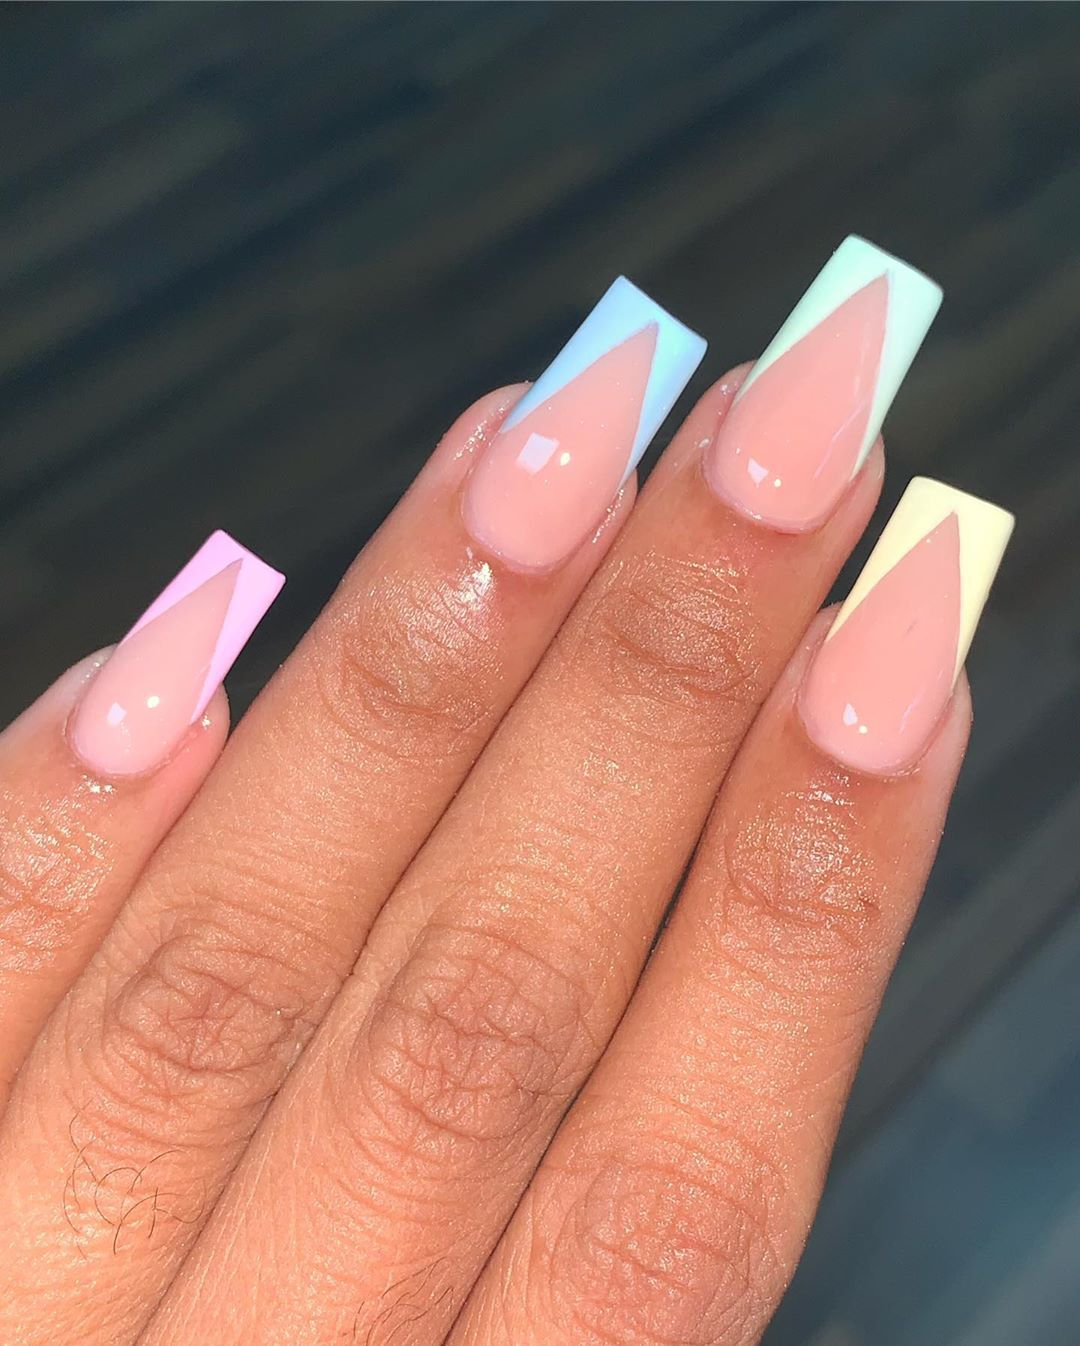 """Jhohannails 🇹🇹 on Instagram: """"#frenchnails #acrylicnails #frenchtips #pastelnails"""""""